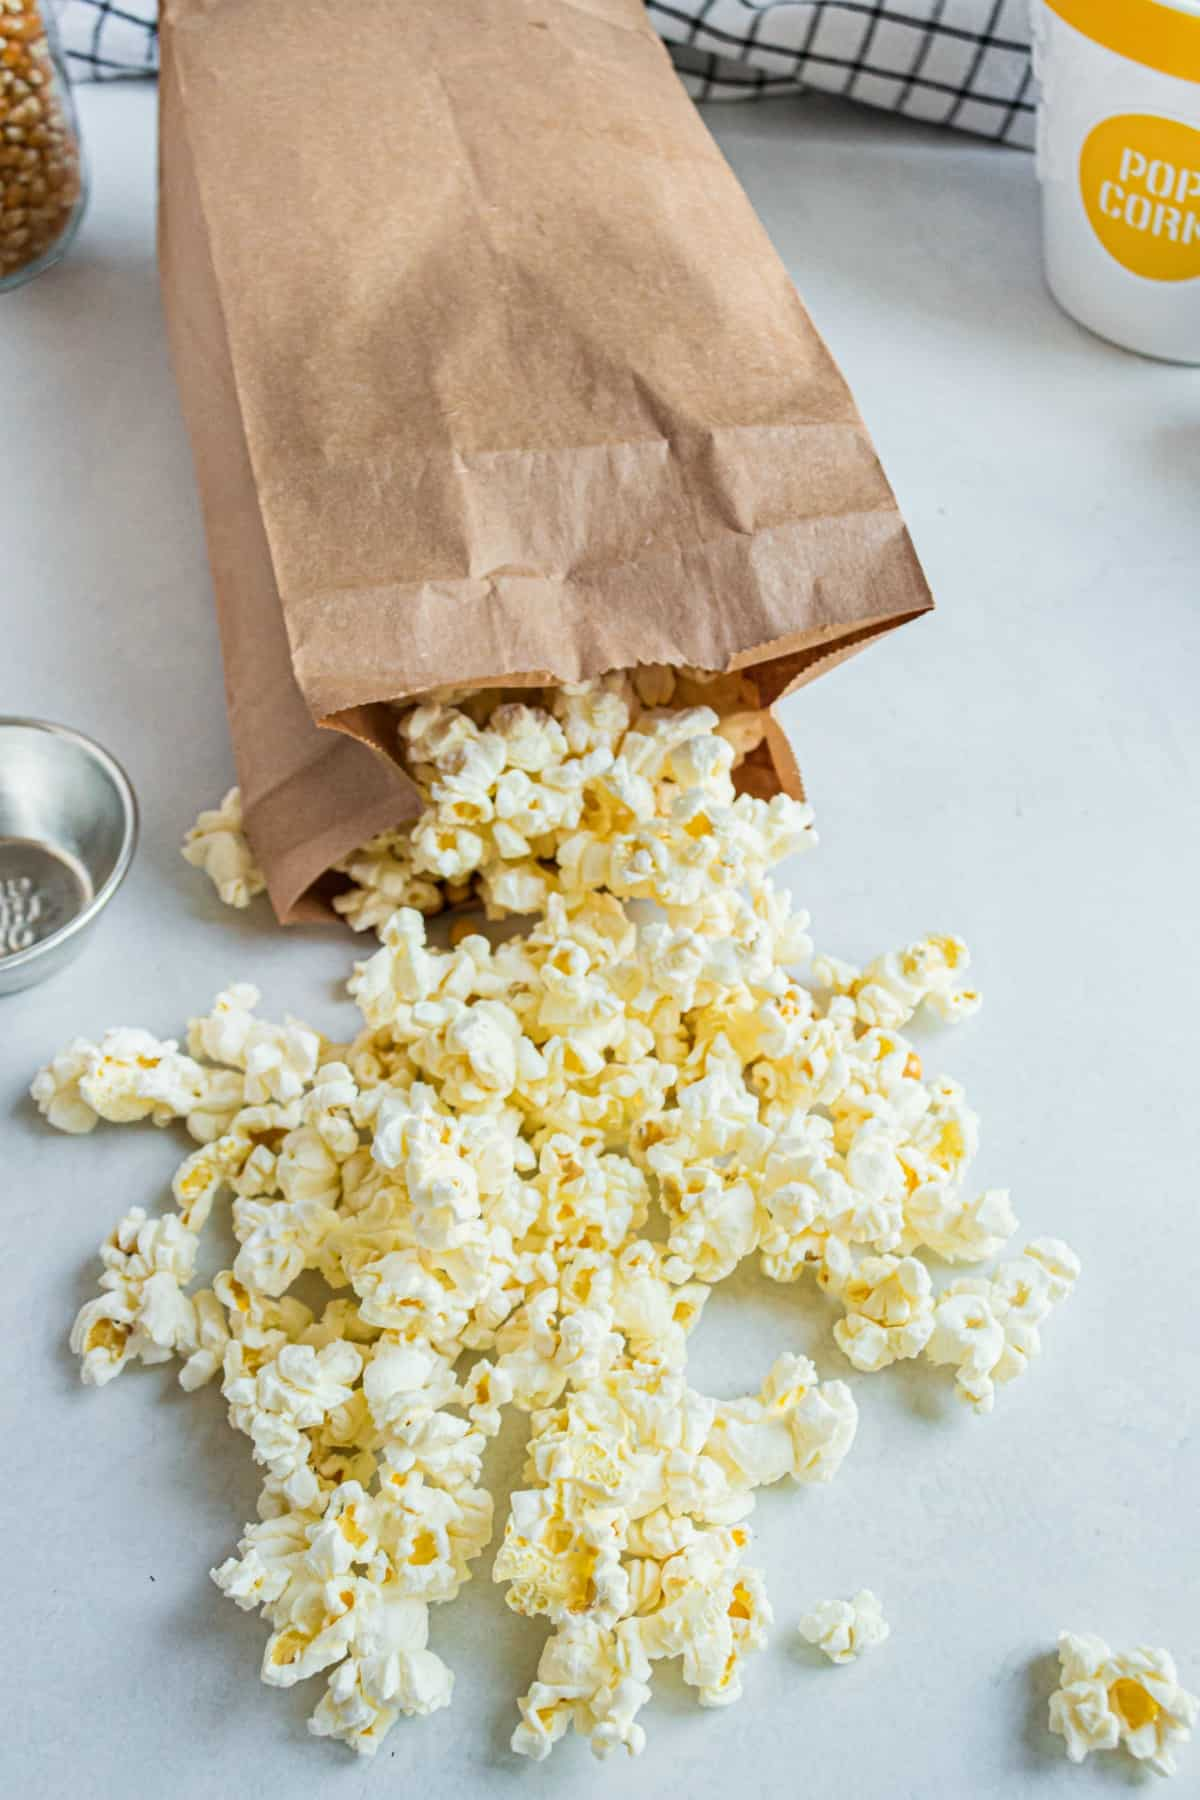 Cooked popcorn falling out of a brown paper bag.